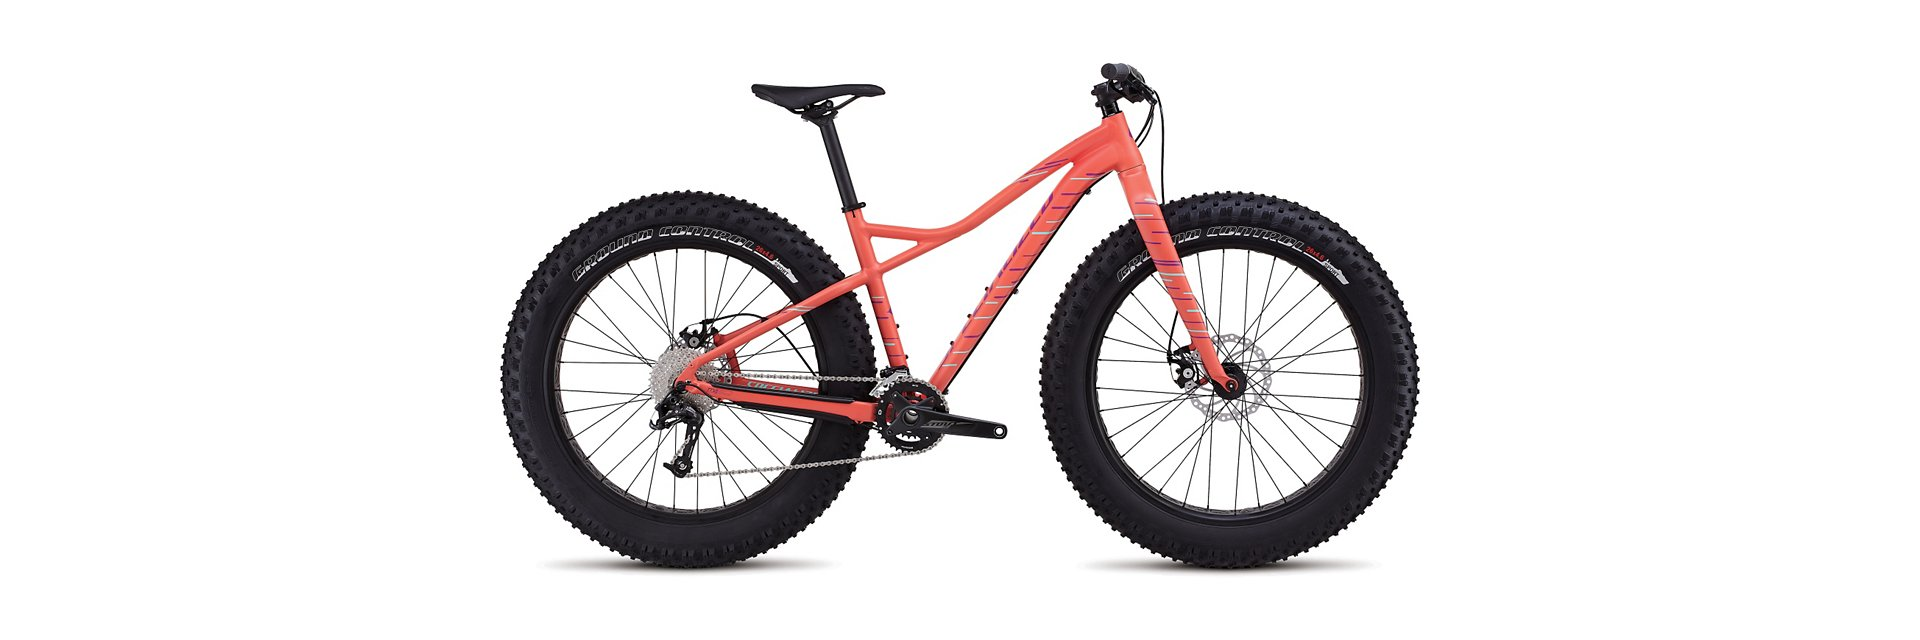 Specialized Hellga women's fat bike